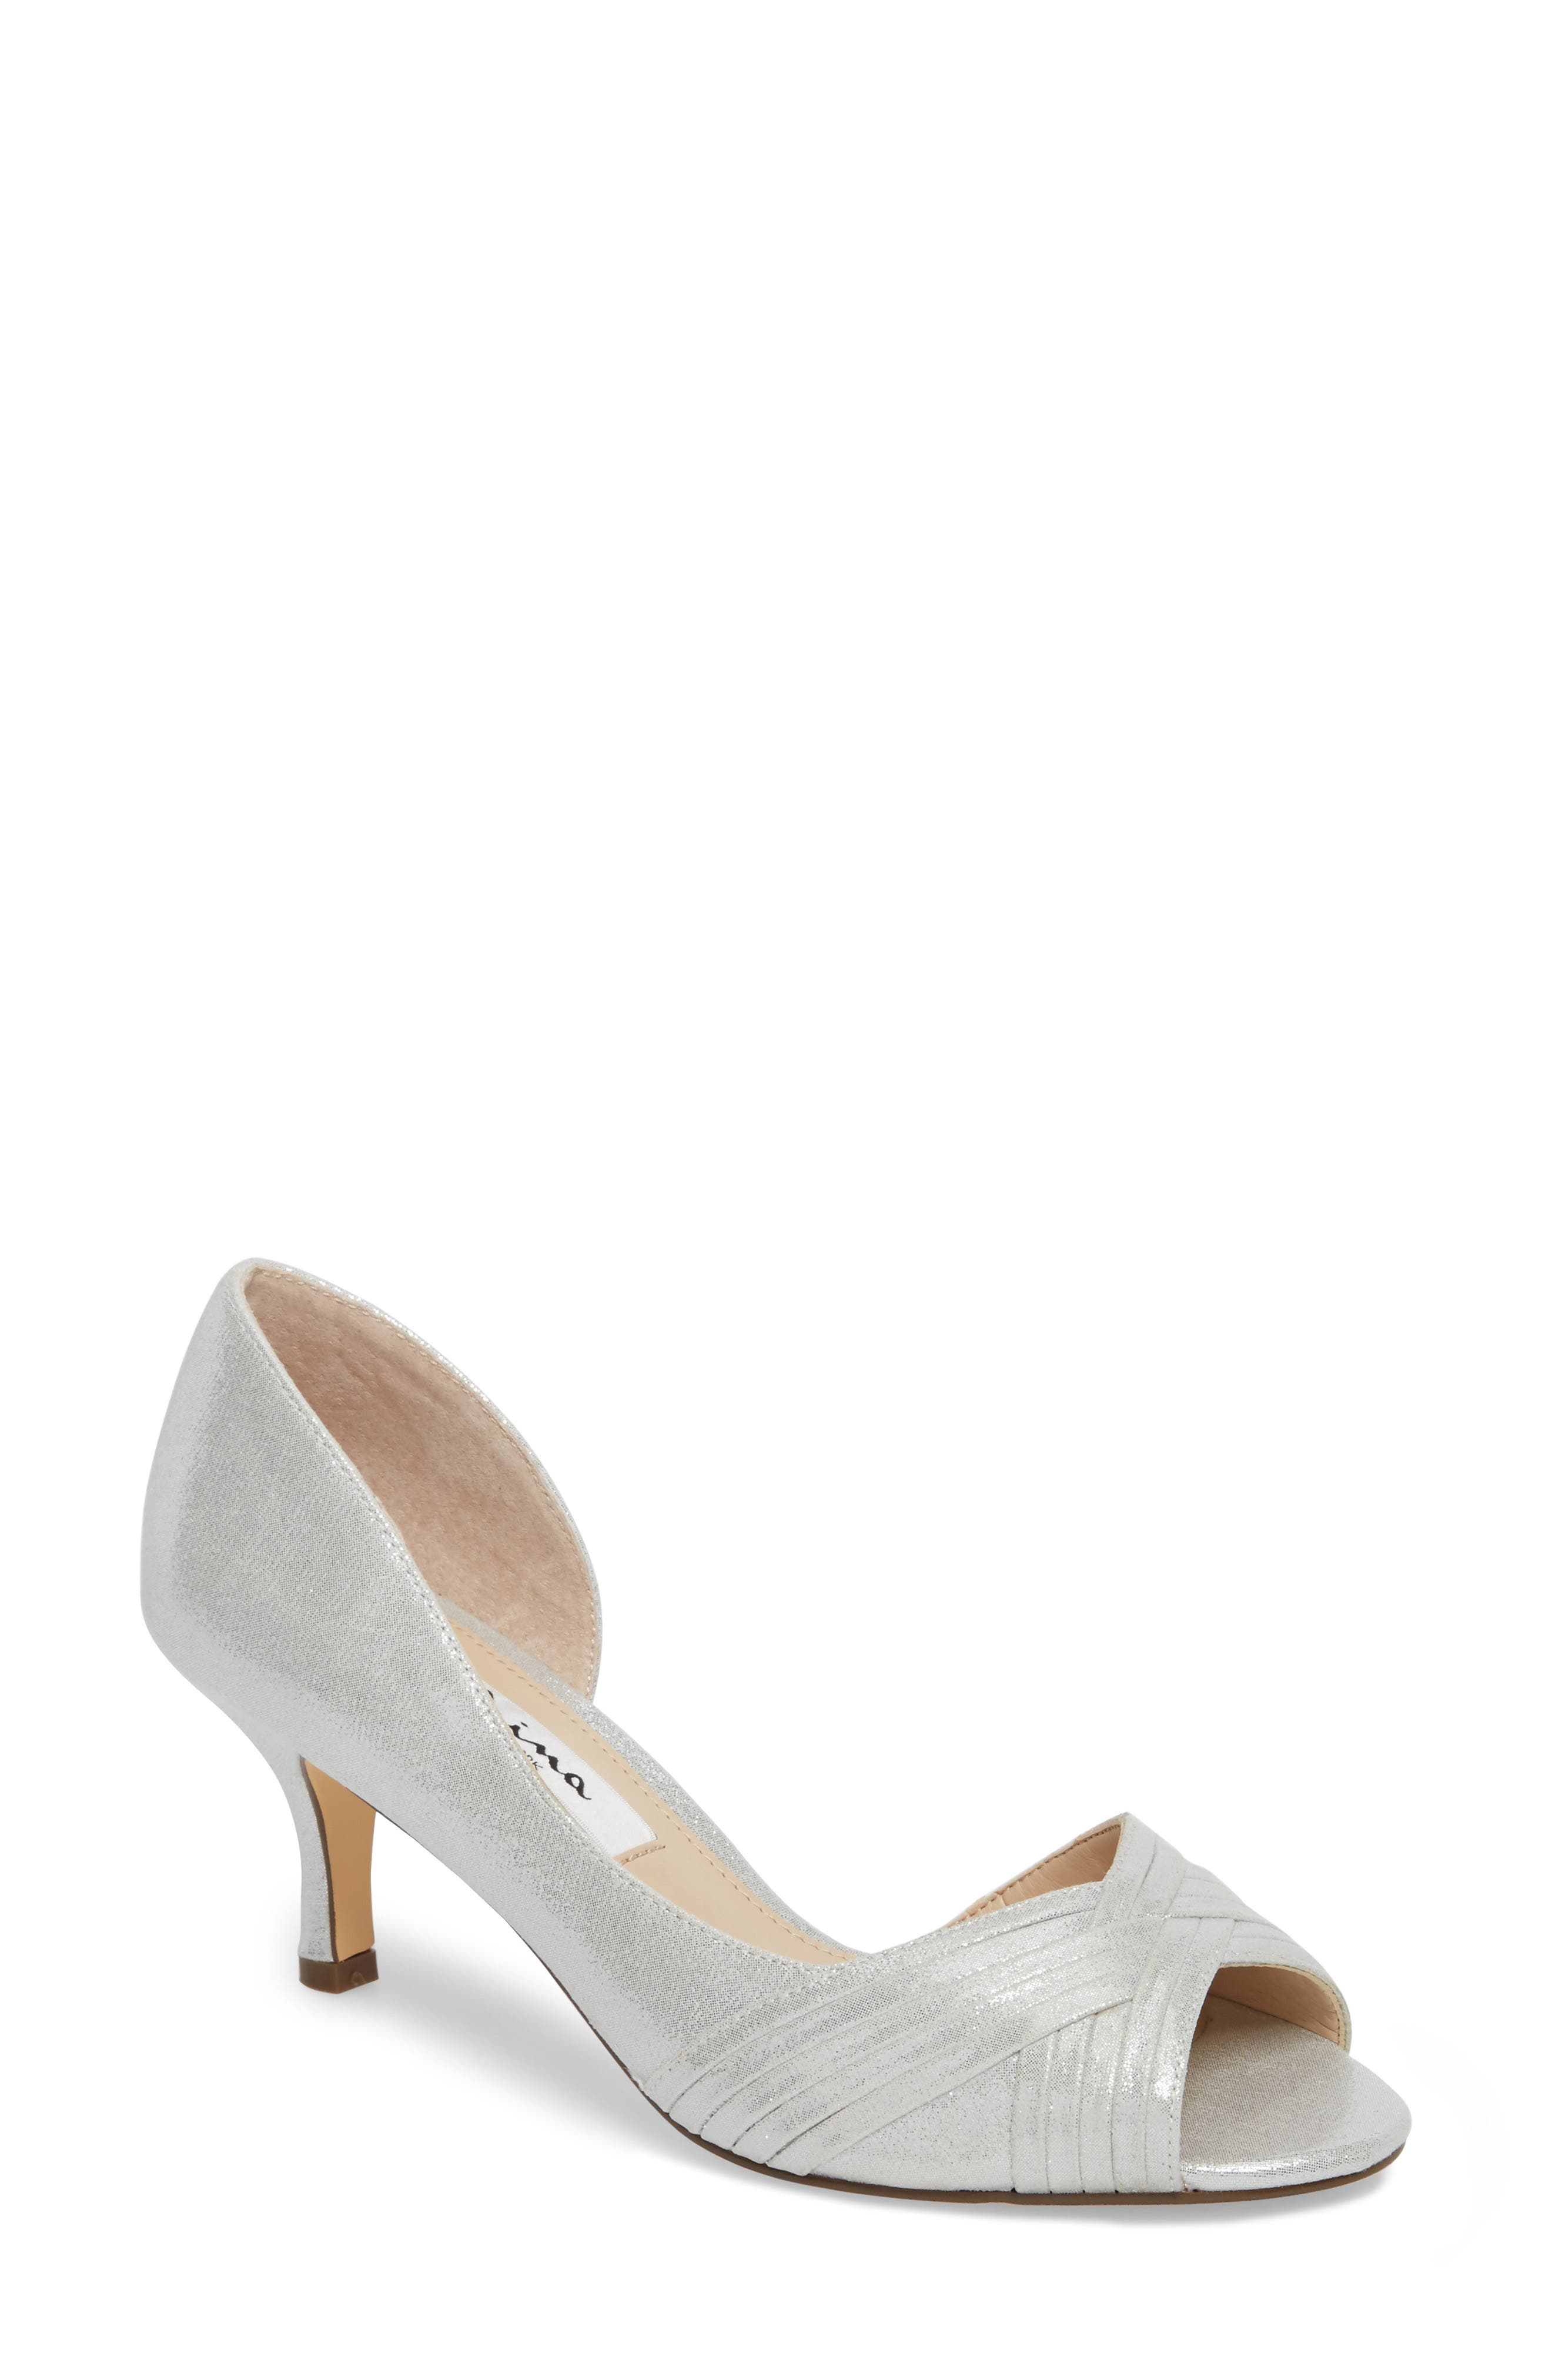 Contesa Open Toe Pump,                         Main,                         color, 041